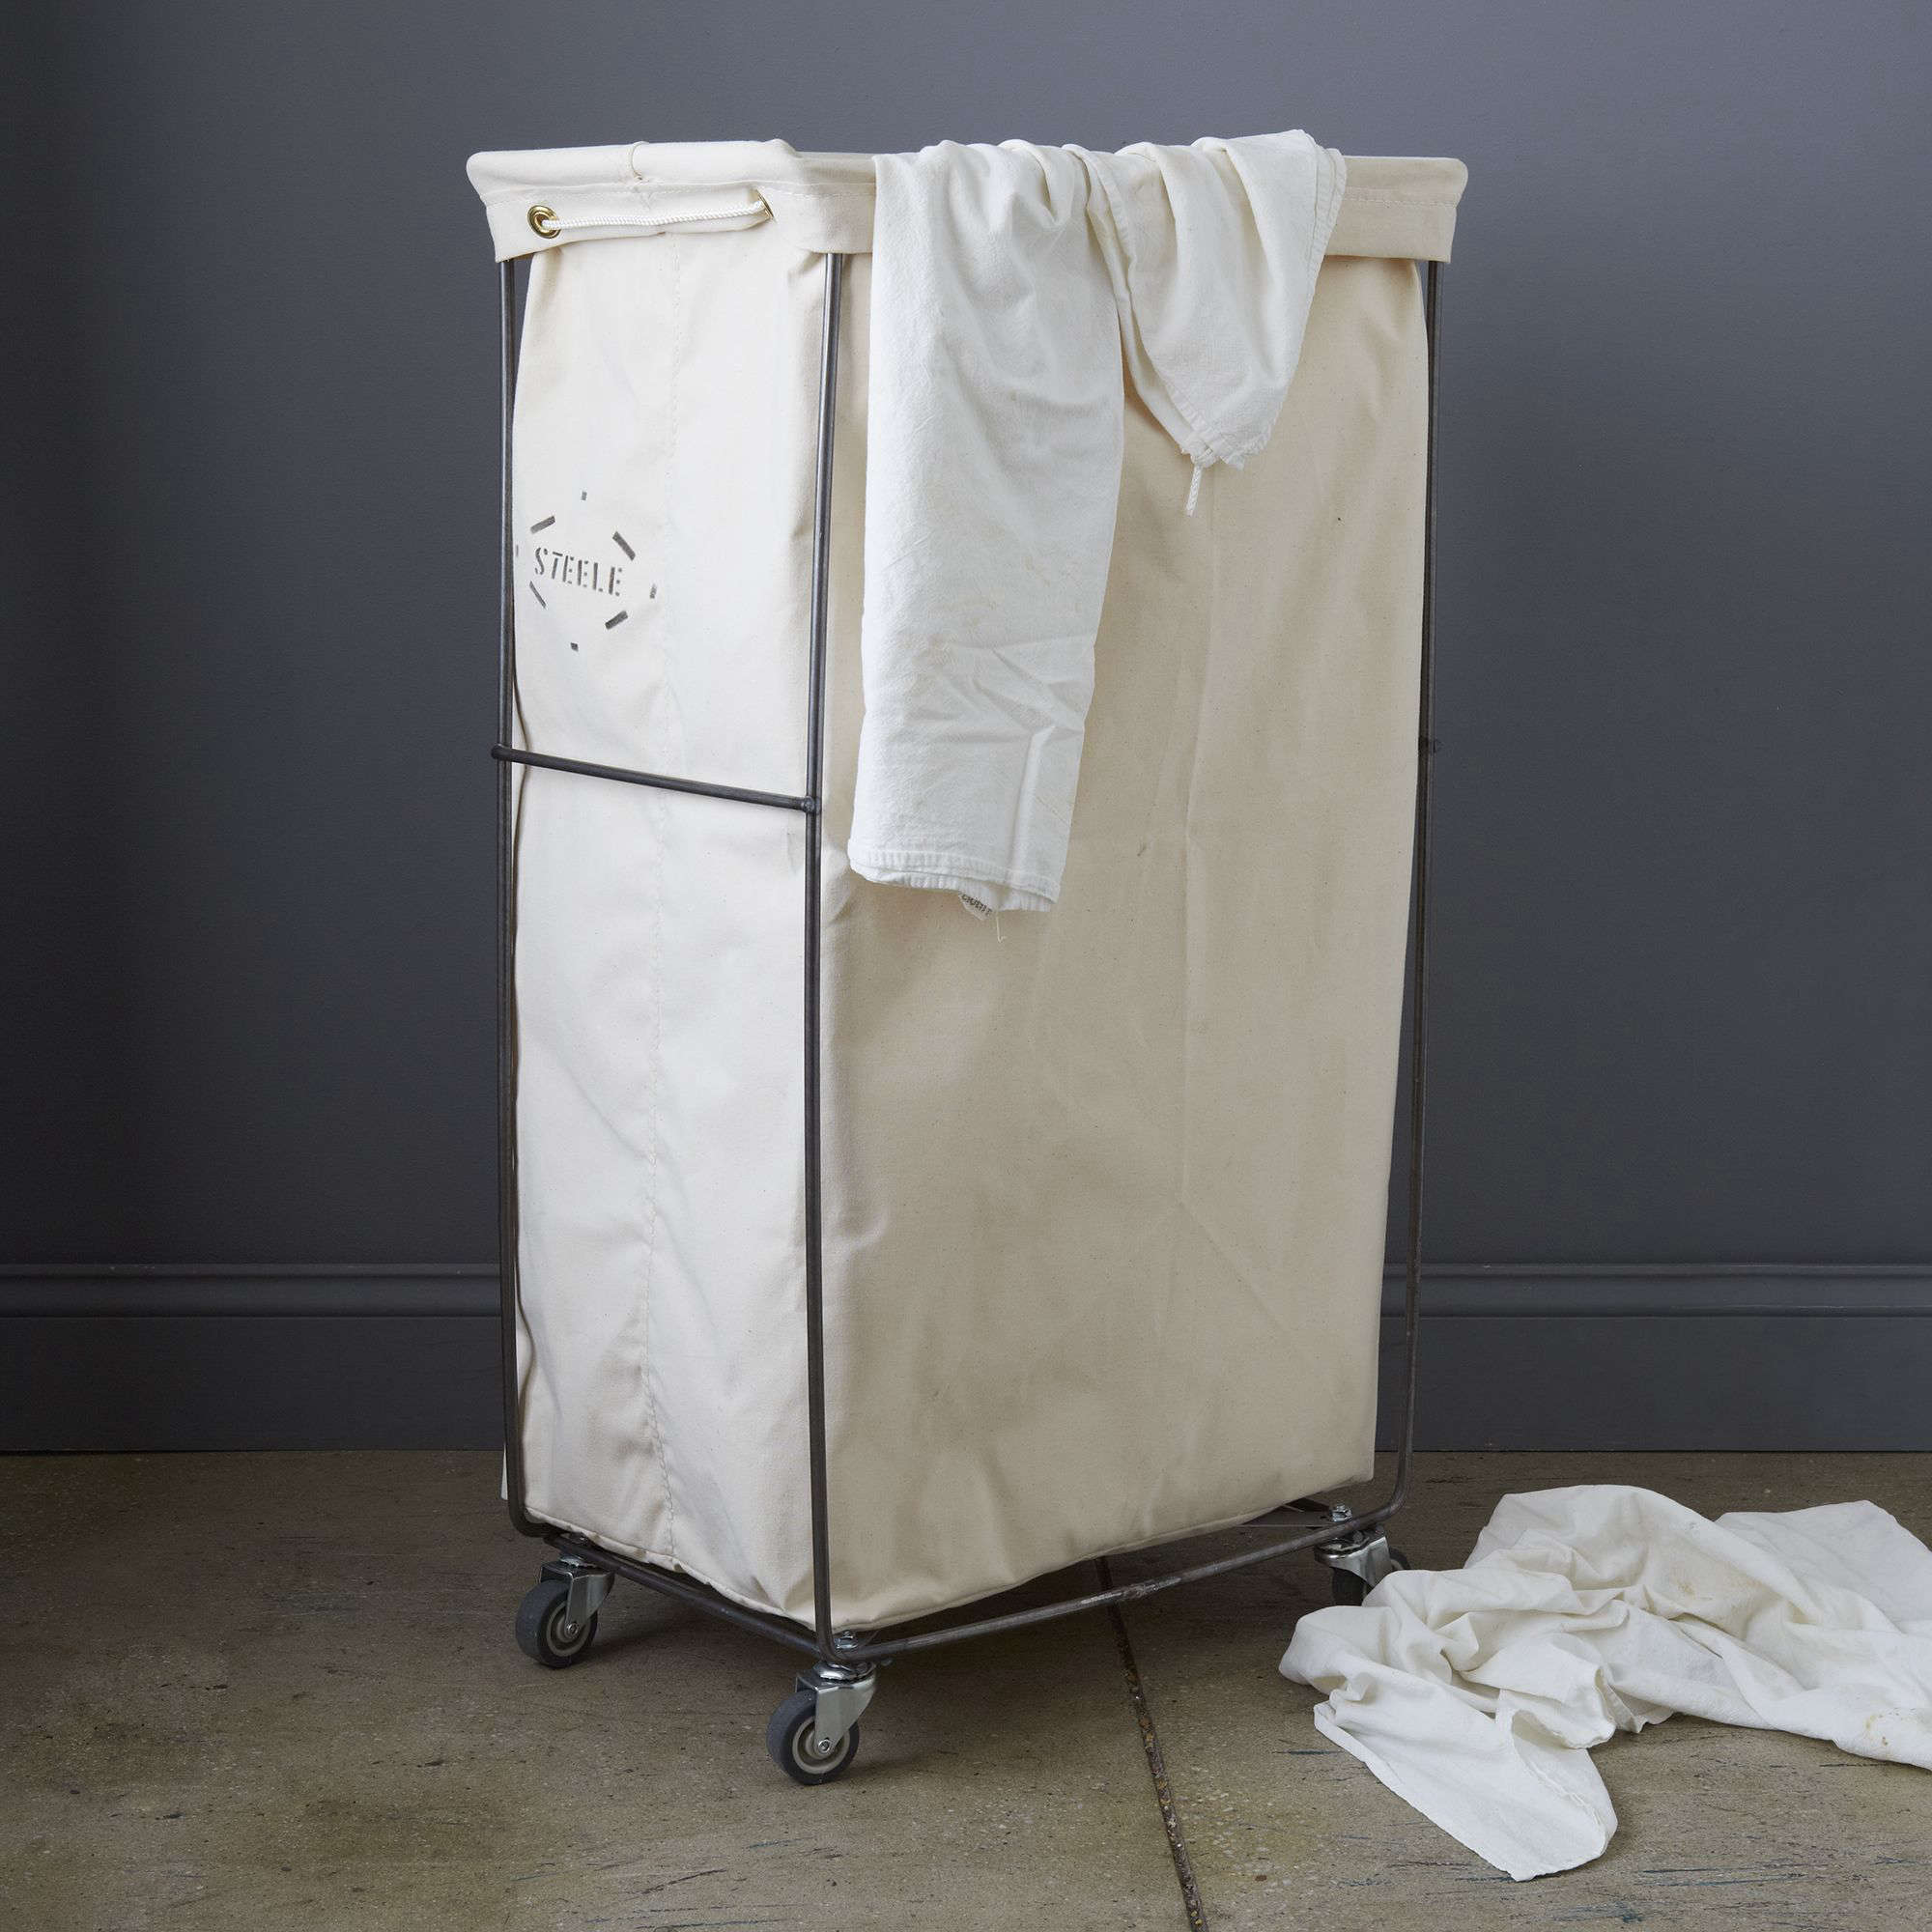 Steele Canvas Narrow Elevated Laundry Basket at Food52